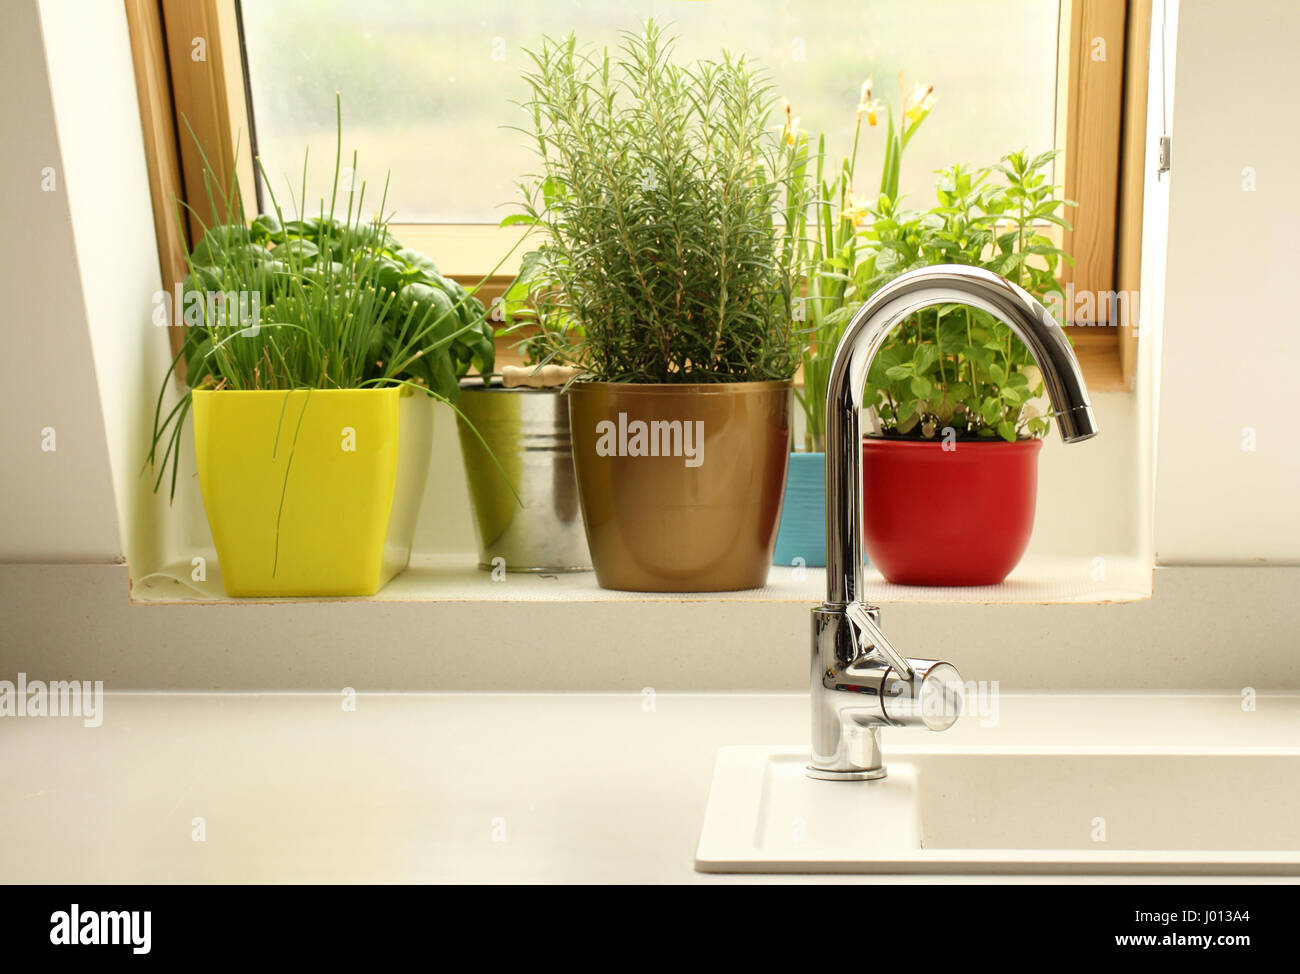 herbs growing in kitchen - Stock Image